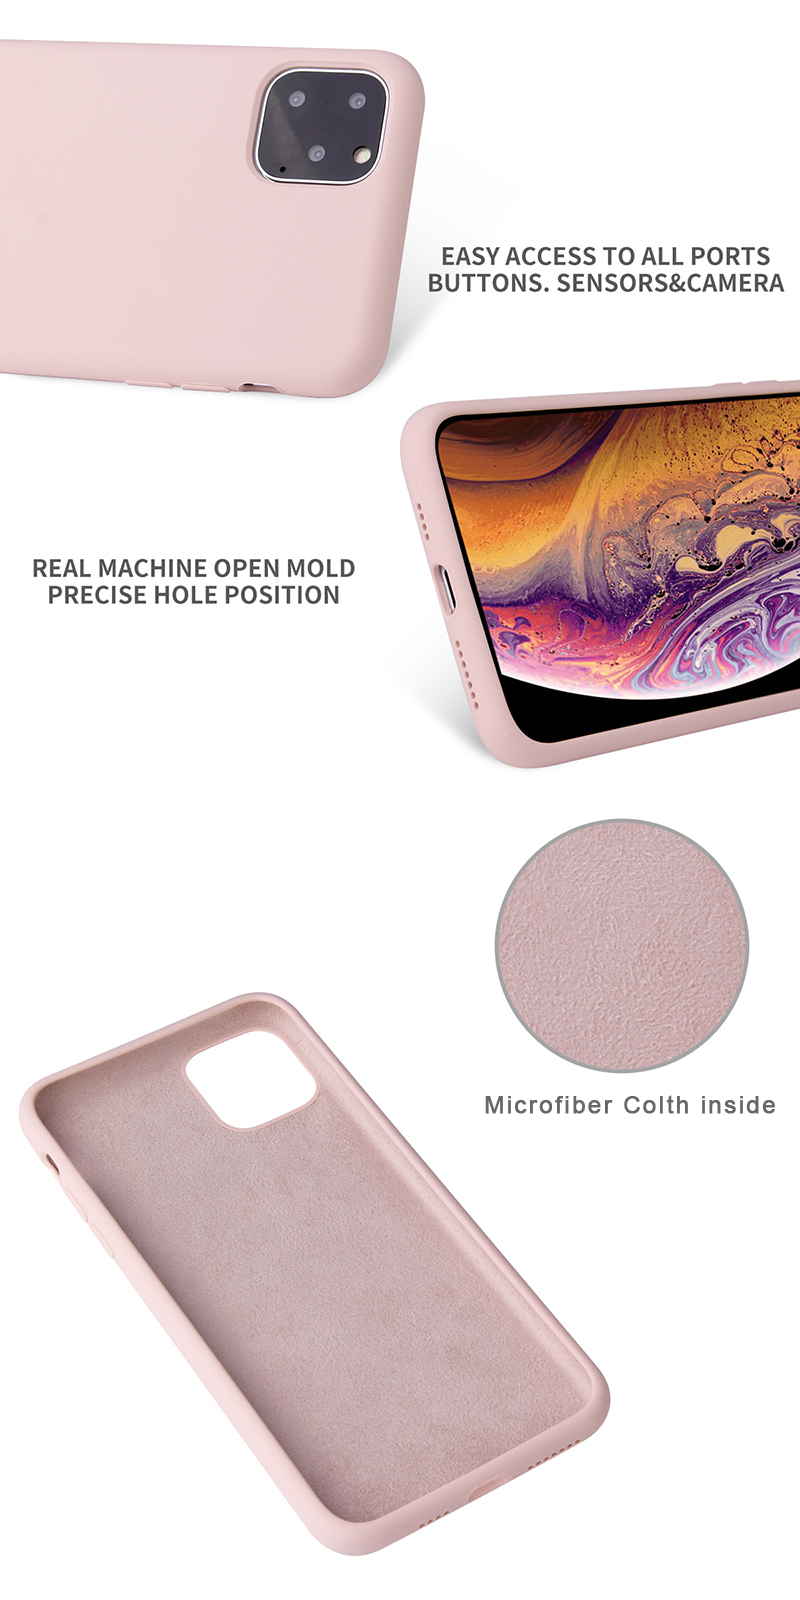 Shockproof Soft Cover For iPhone 11 Case Original Quality Genuine Liquid Silicone Case Microfiber inside iPhone X Phone Case